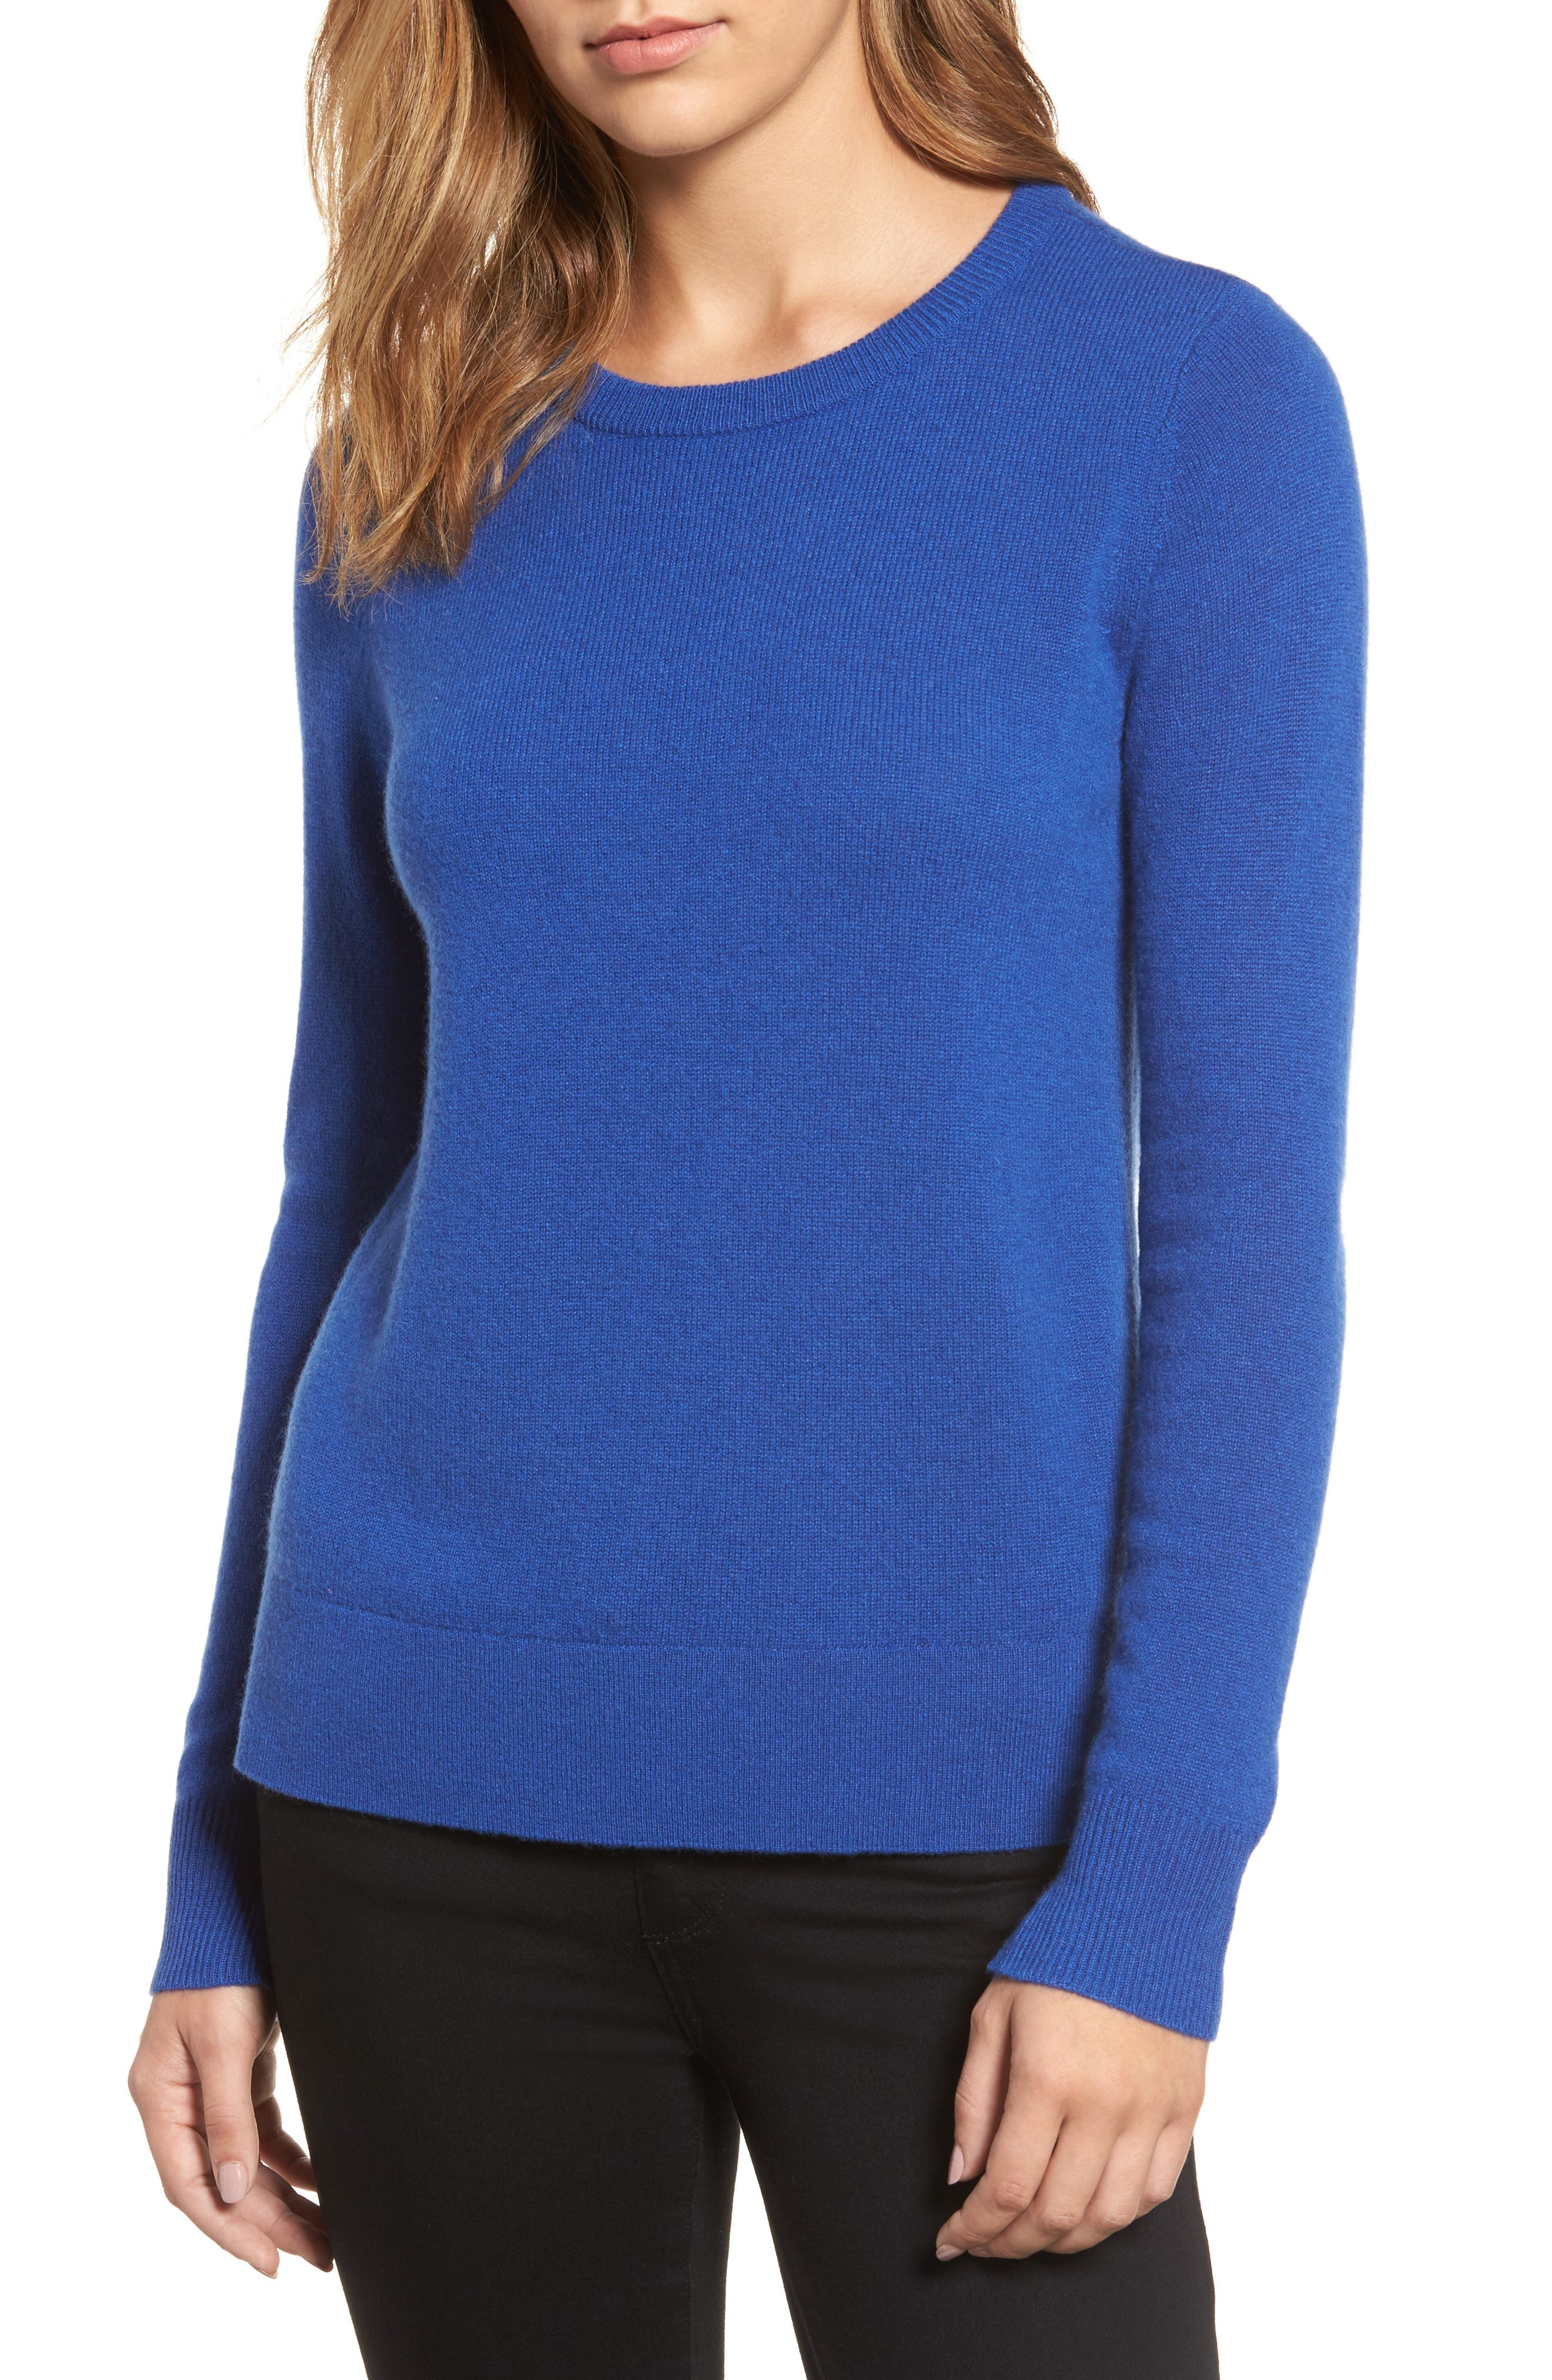 Alternate Image 1 Selected - Halogen® Crewneck Cashmere Sweater (Regular & Petite)